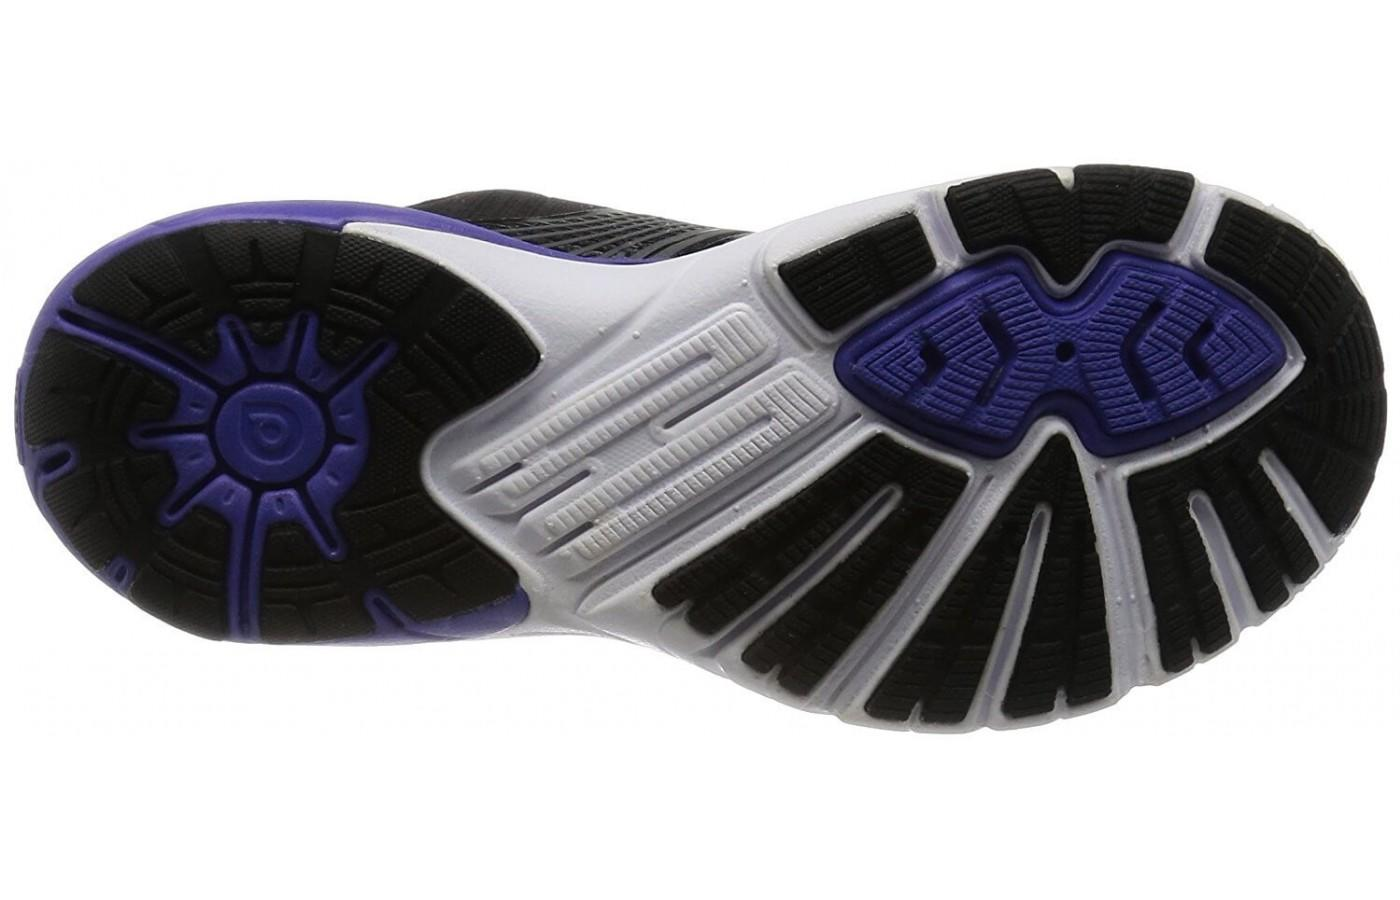 Brooks PureCadence 6 has a rubber outsole